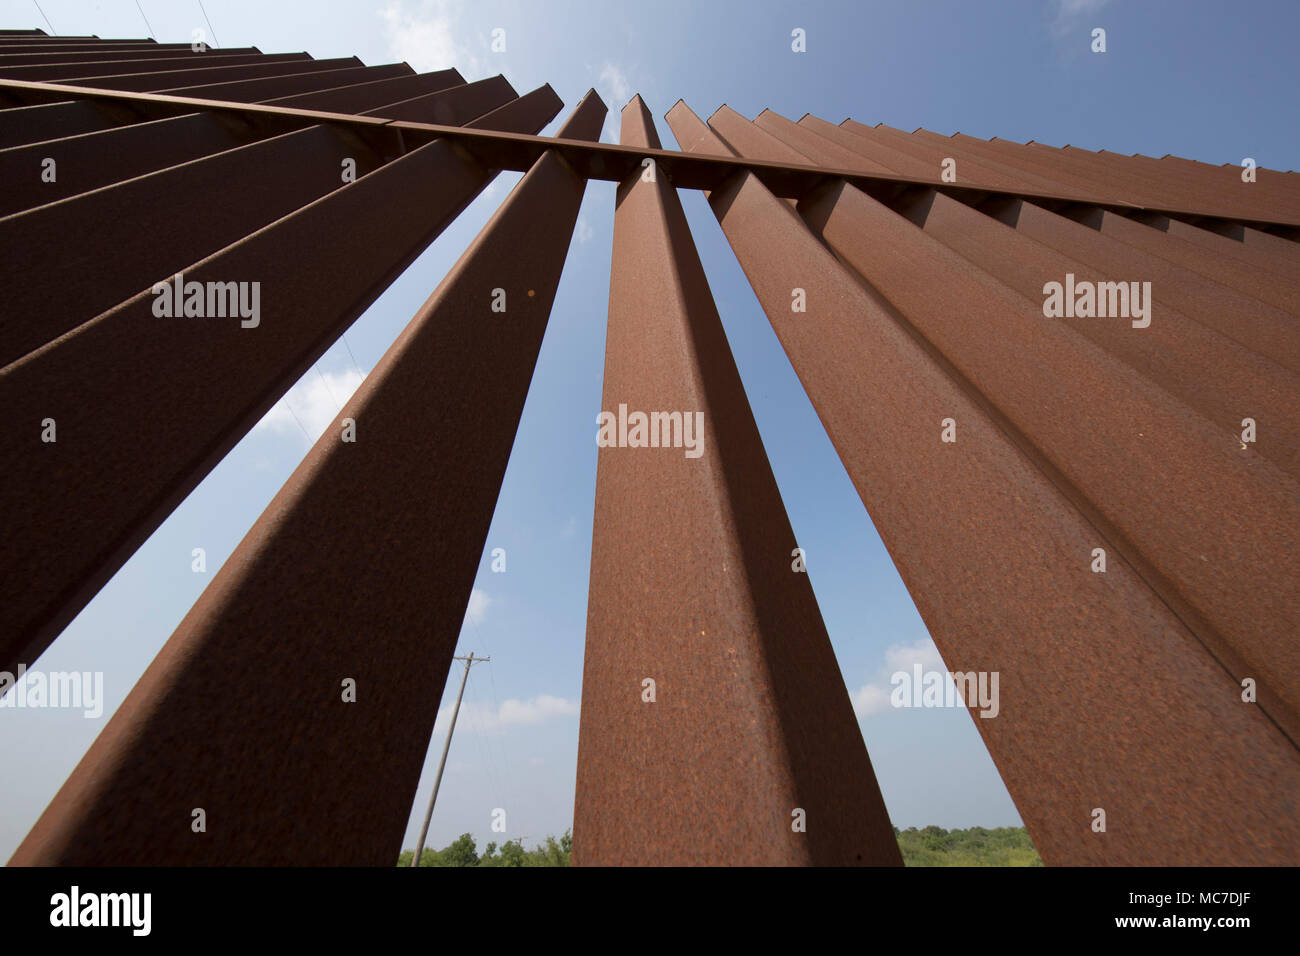 A section of the security fence between the United States and Mexico sits atop a levee of the Rio Grande River on the Texas side of the international border in Hidalgo County. Stock Photo